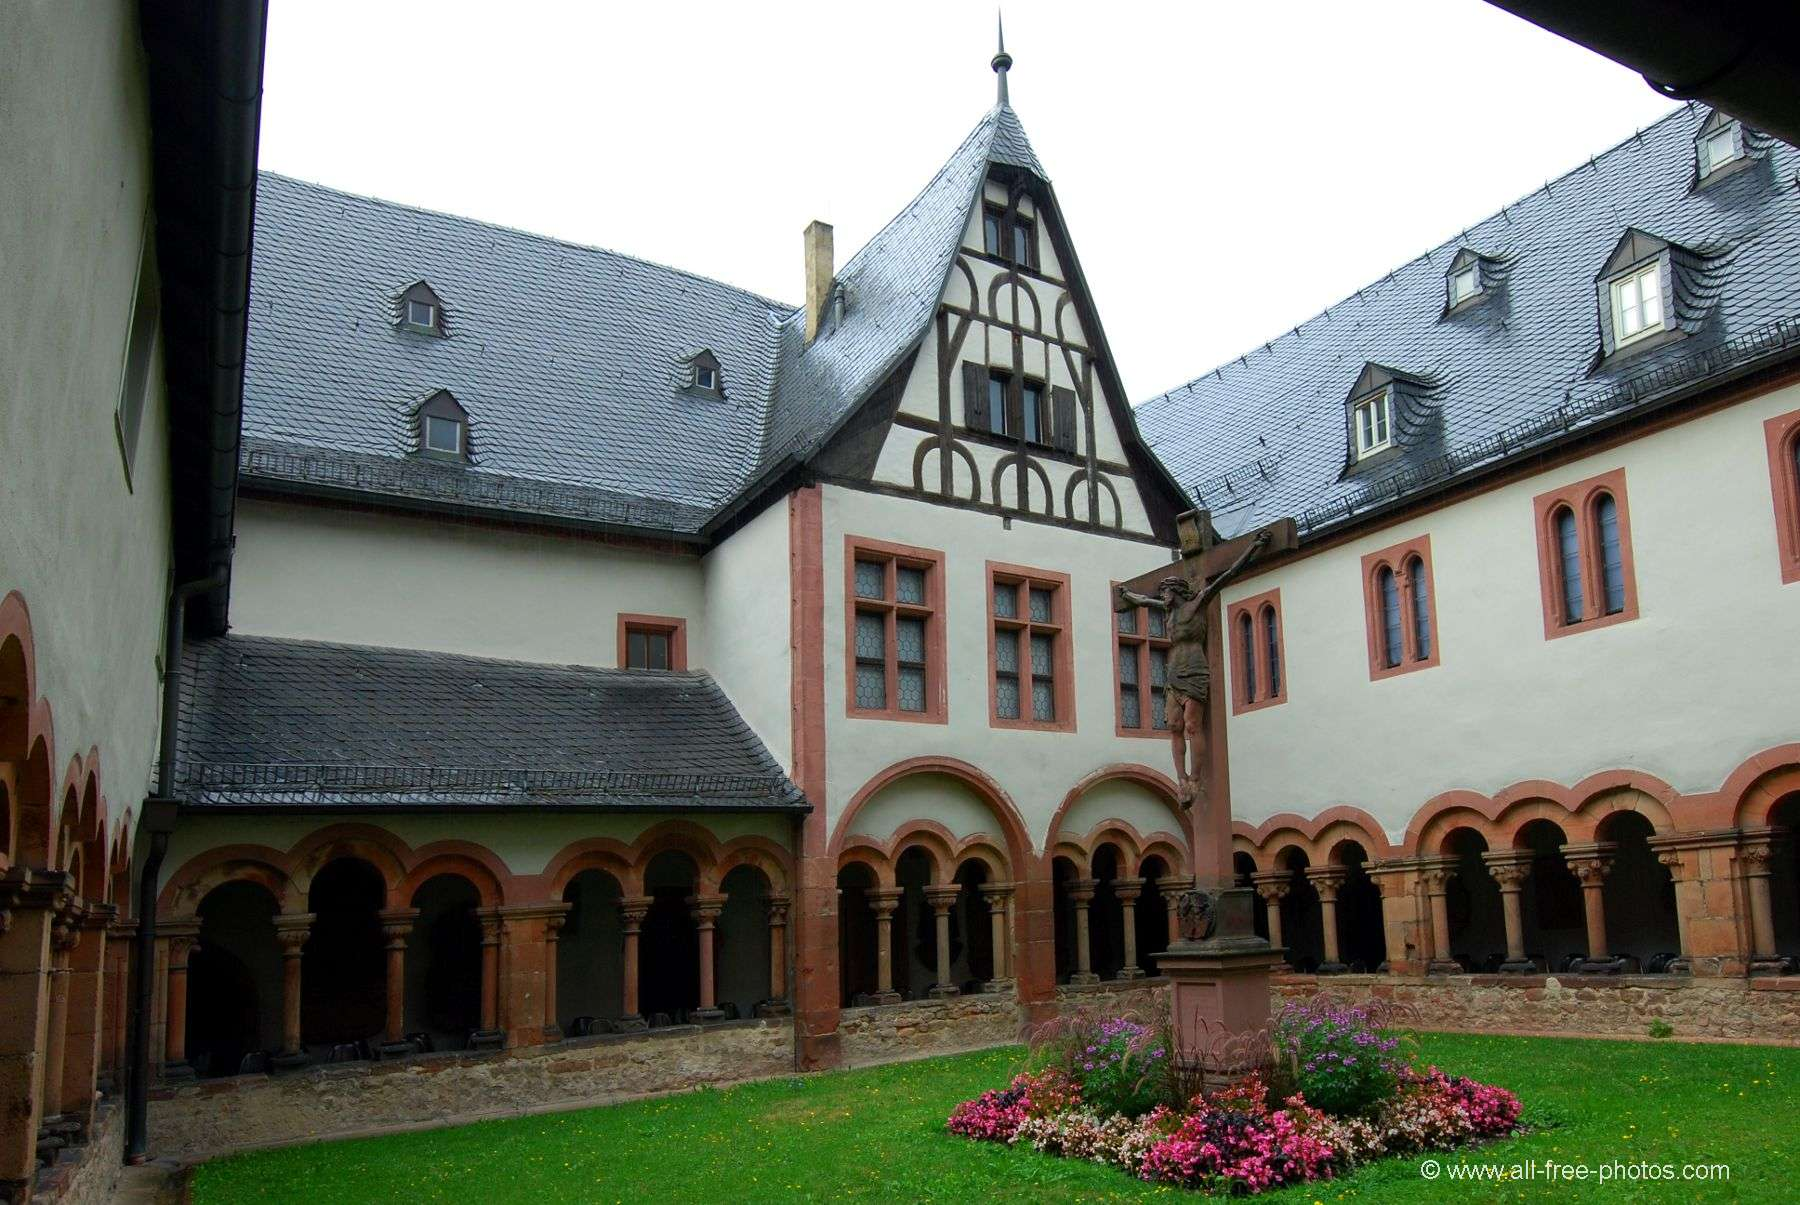 Cloister - Aschaffenburg - Germany